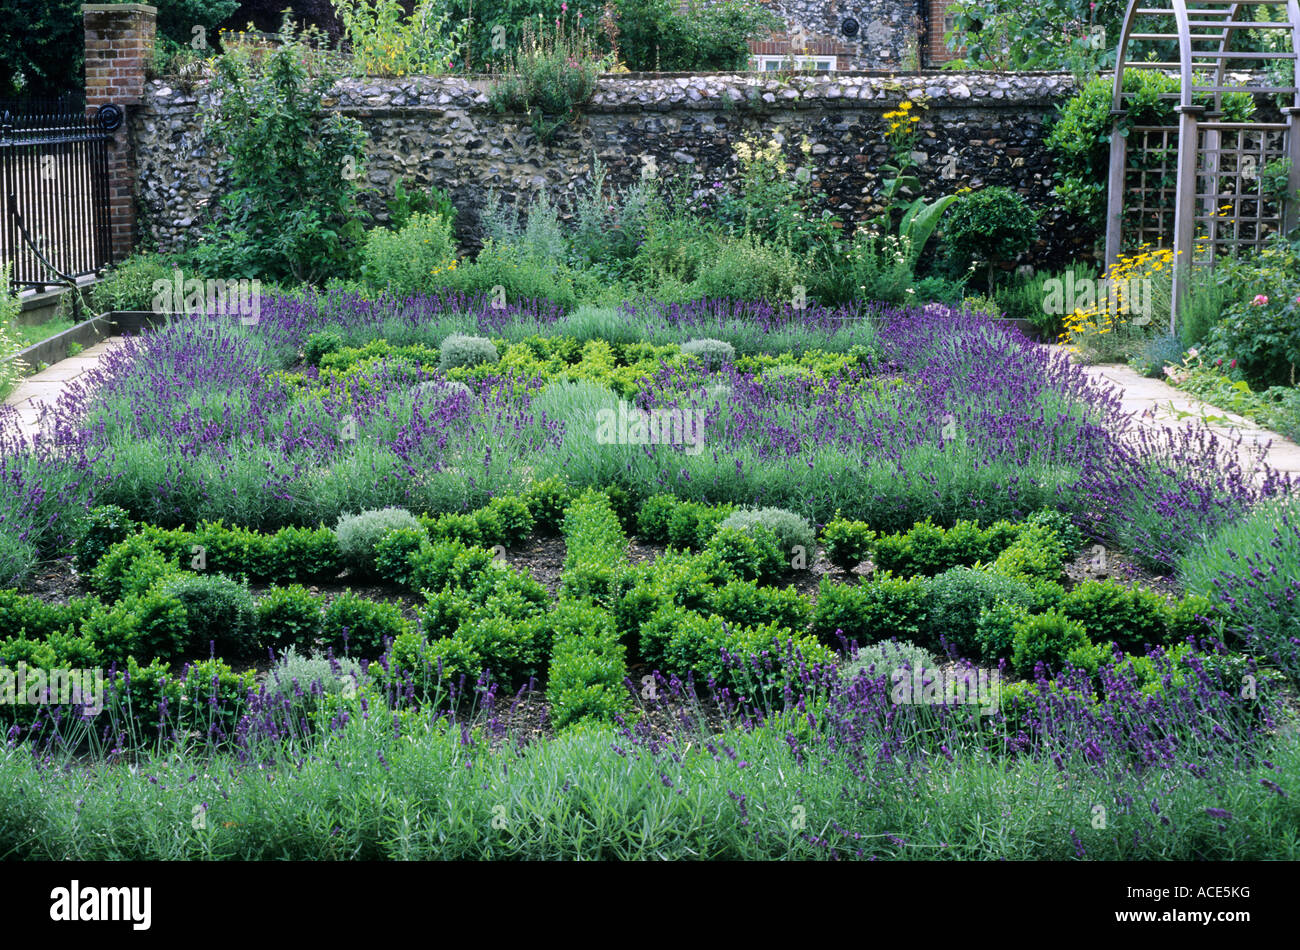 Herb knot front garden lavender box hedges paving Stock